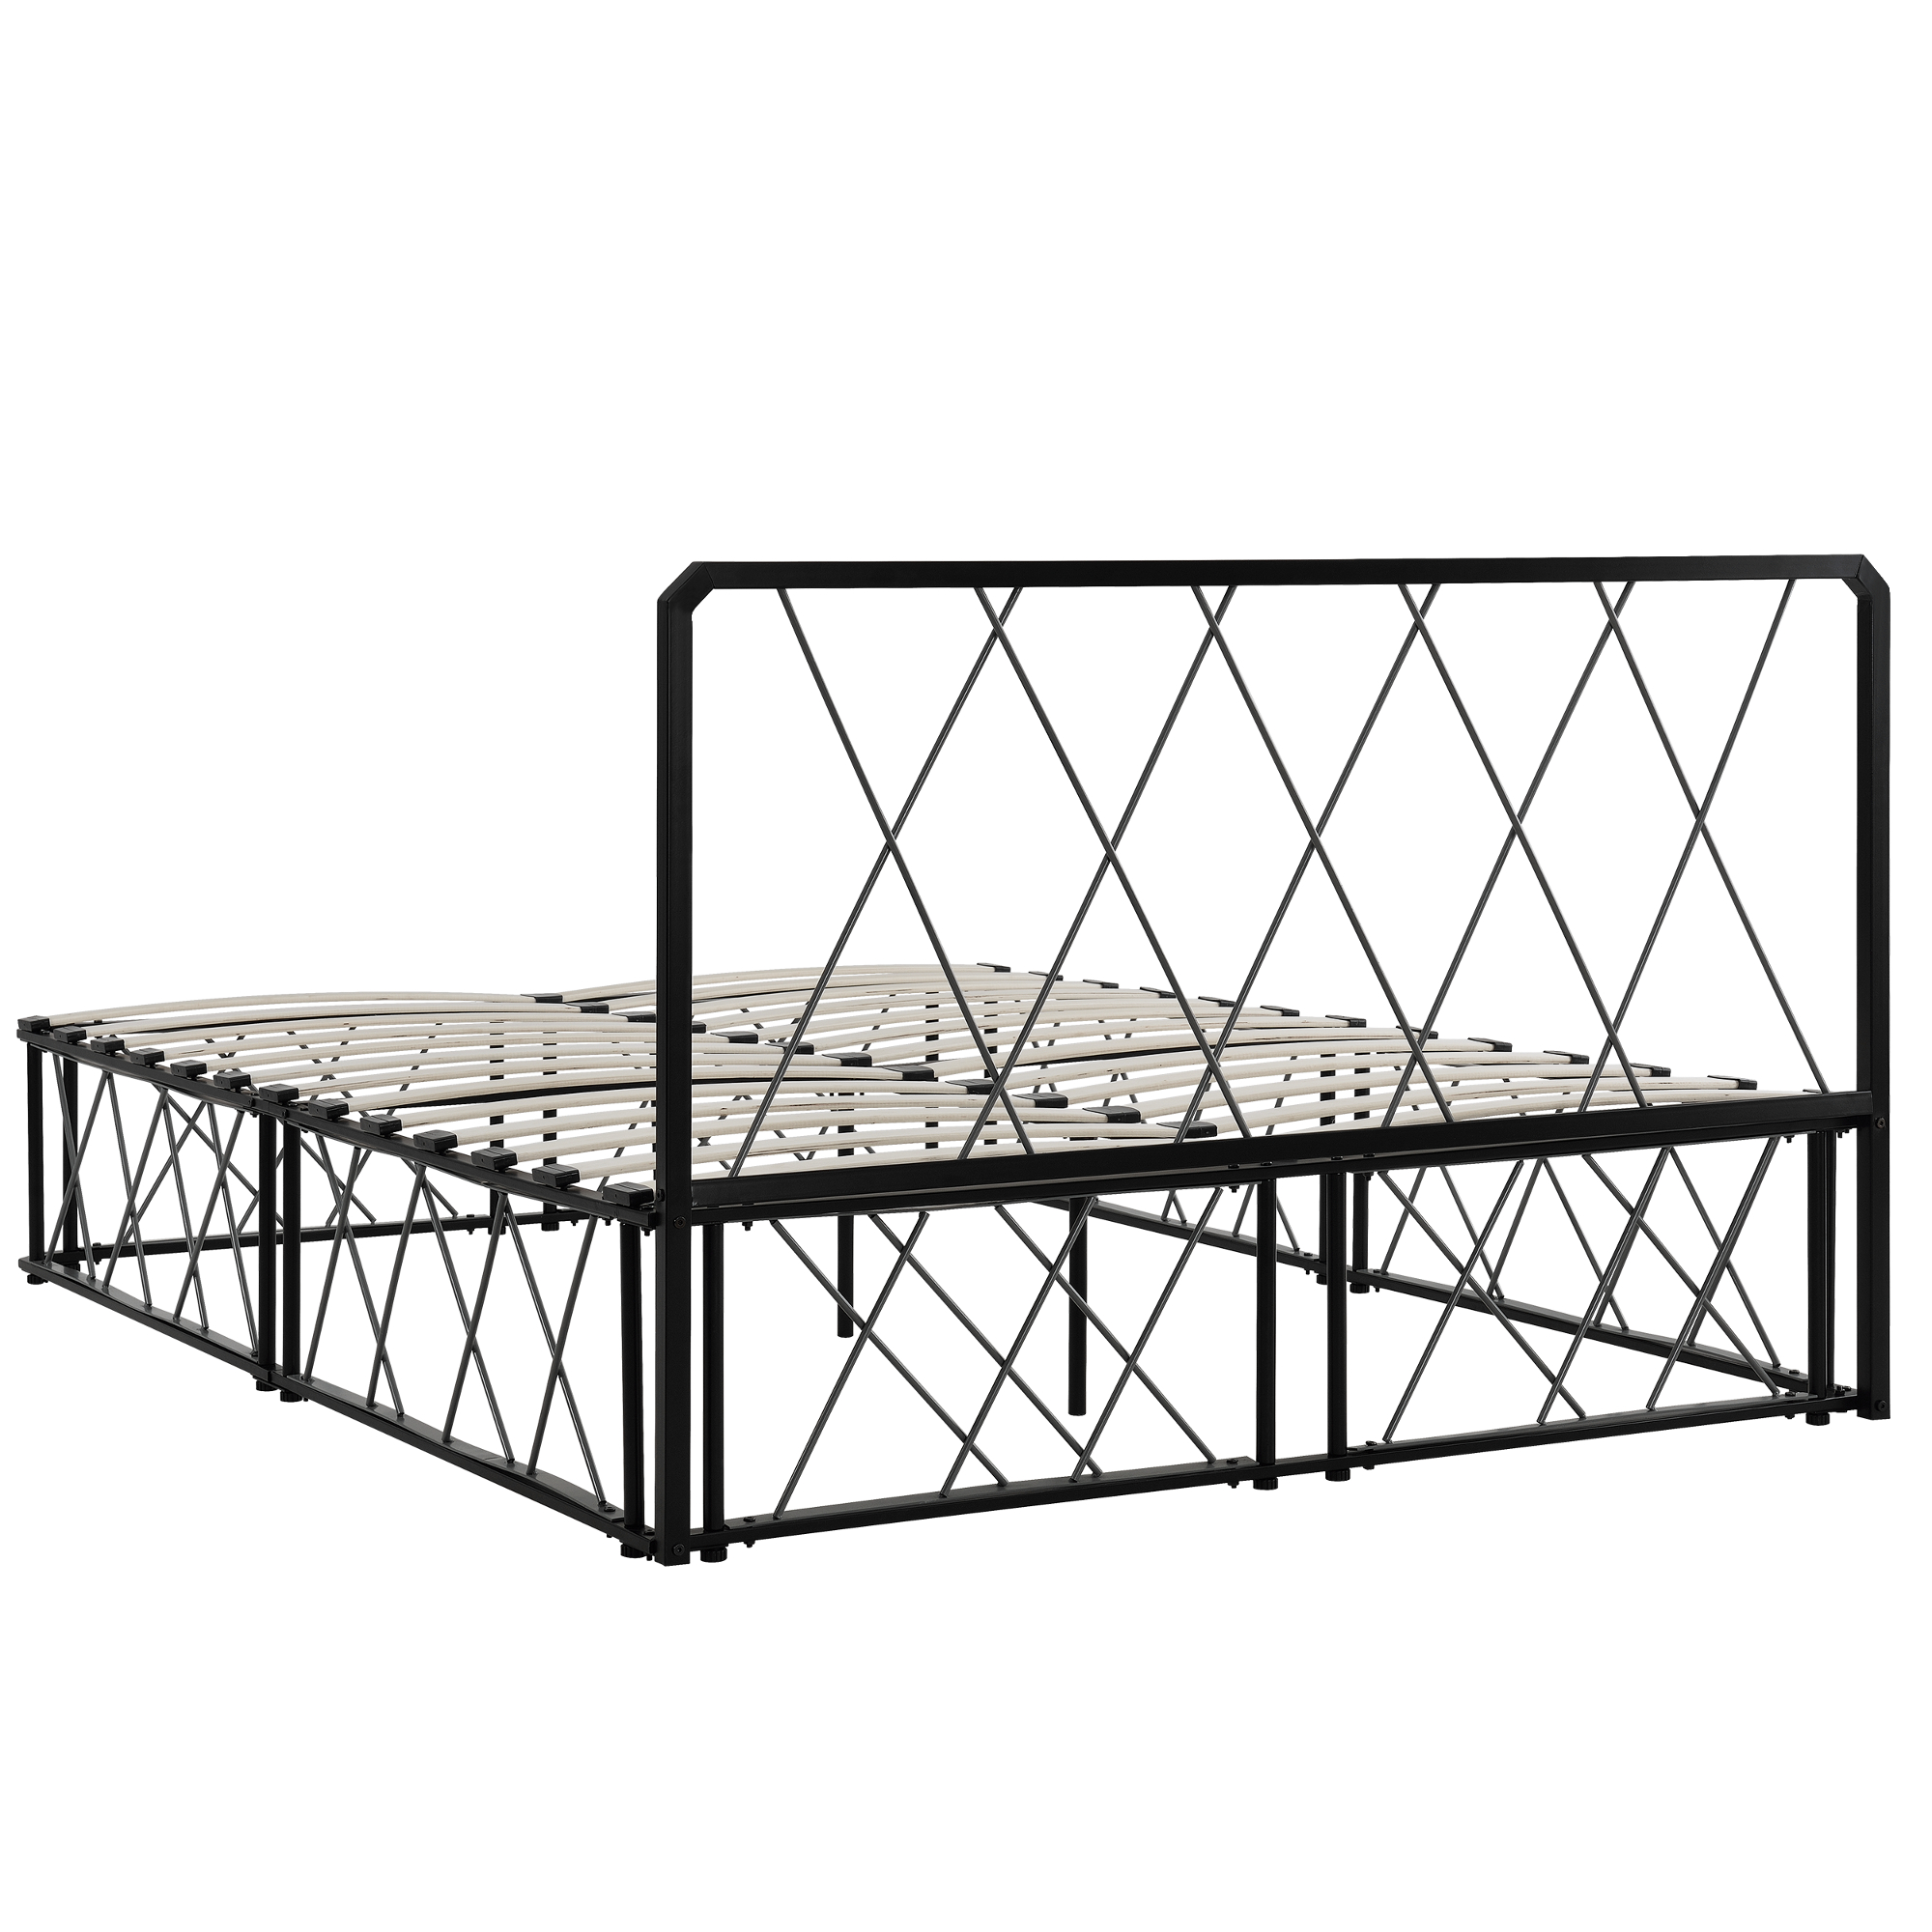 metallbett 140x200 schwarz grau mit matratze design bett schlafzimmer ebay. Black Bedroom Furniture Sets. Home Design Ideas